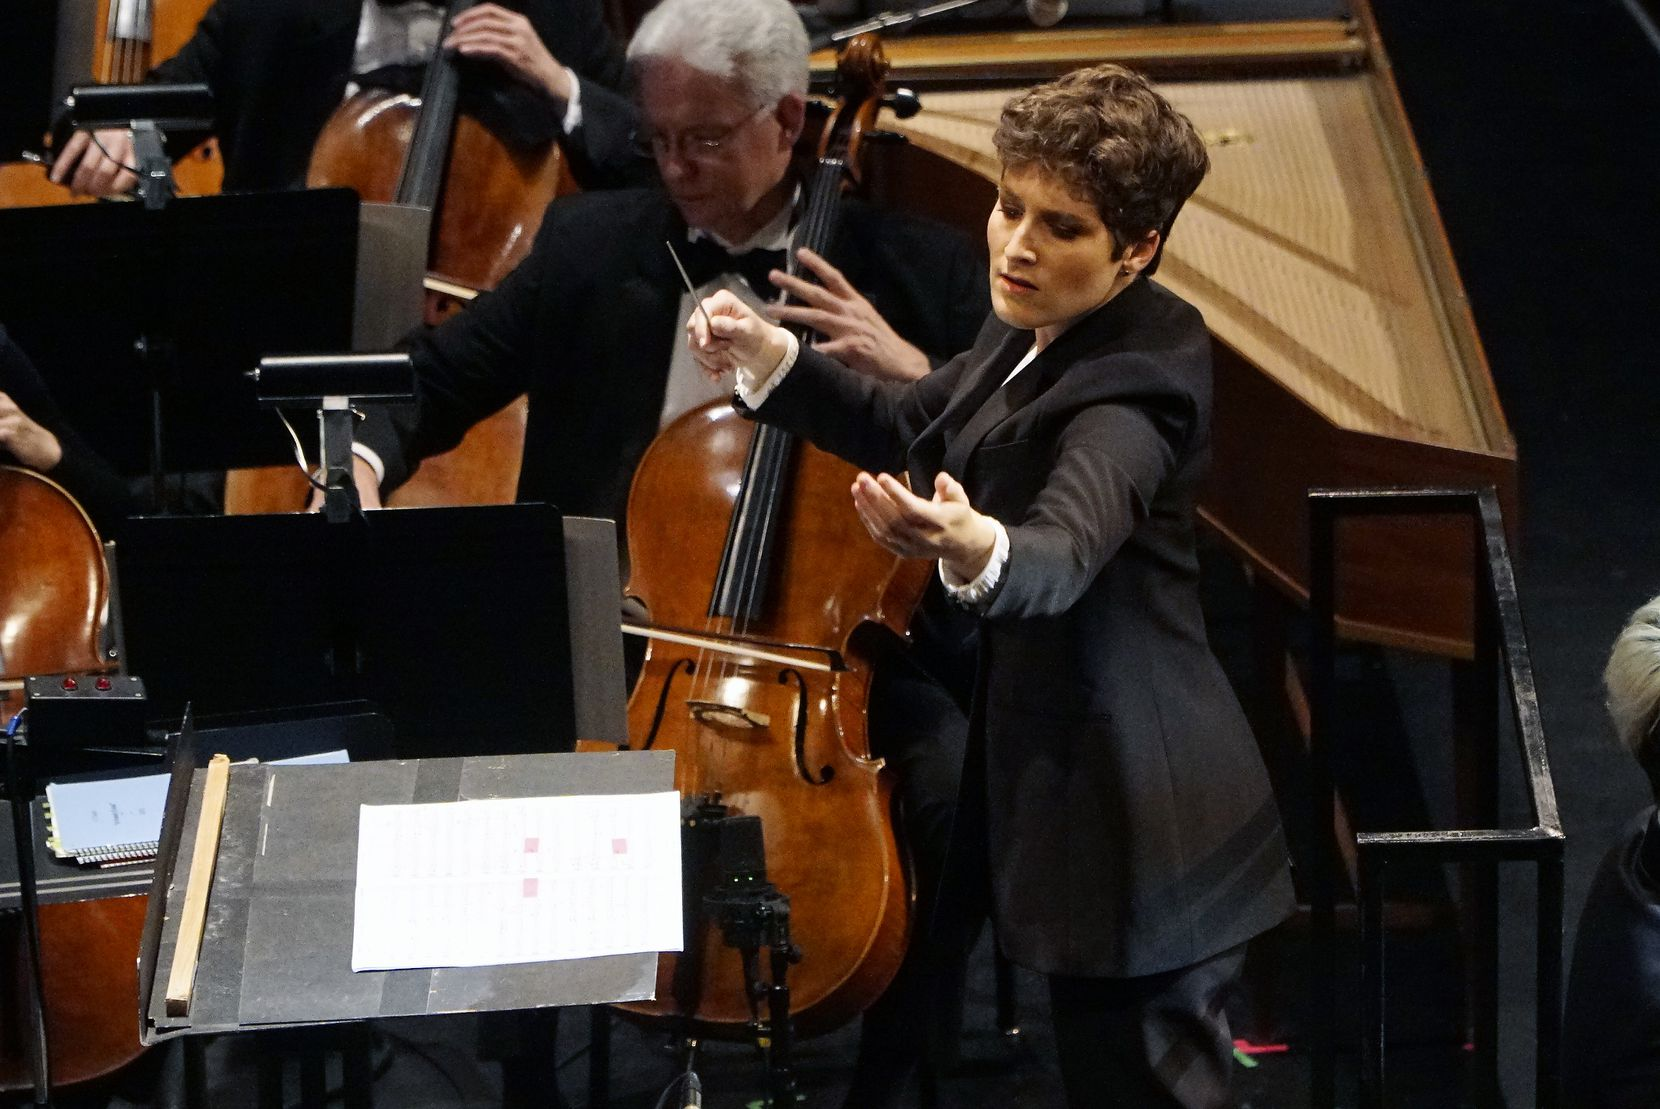 Tamara Dworetz conducts the Dallas Symphony Orchestra during the Hart Institute for Women Conductors showcase concert at the Winspear Opera House in Dallas, Texas on Saturday, November 9, 2019.